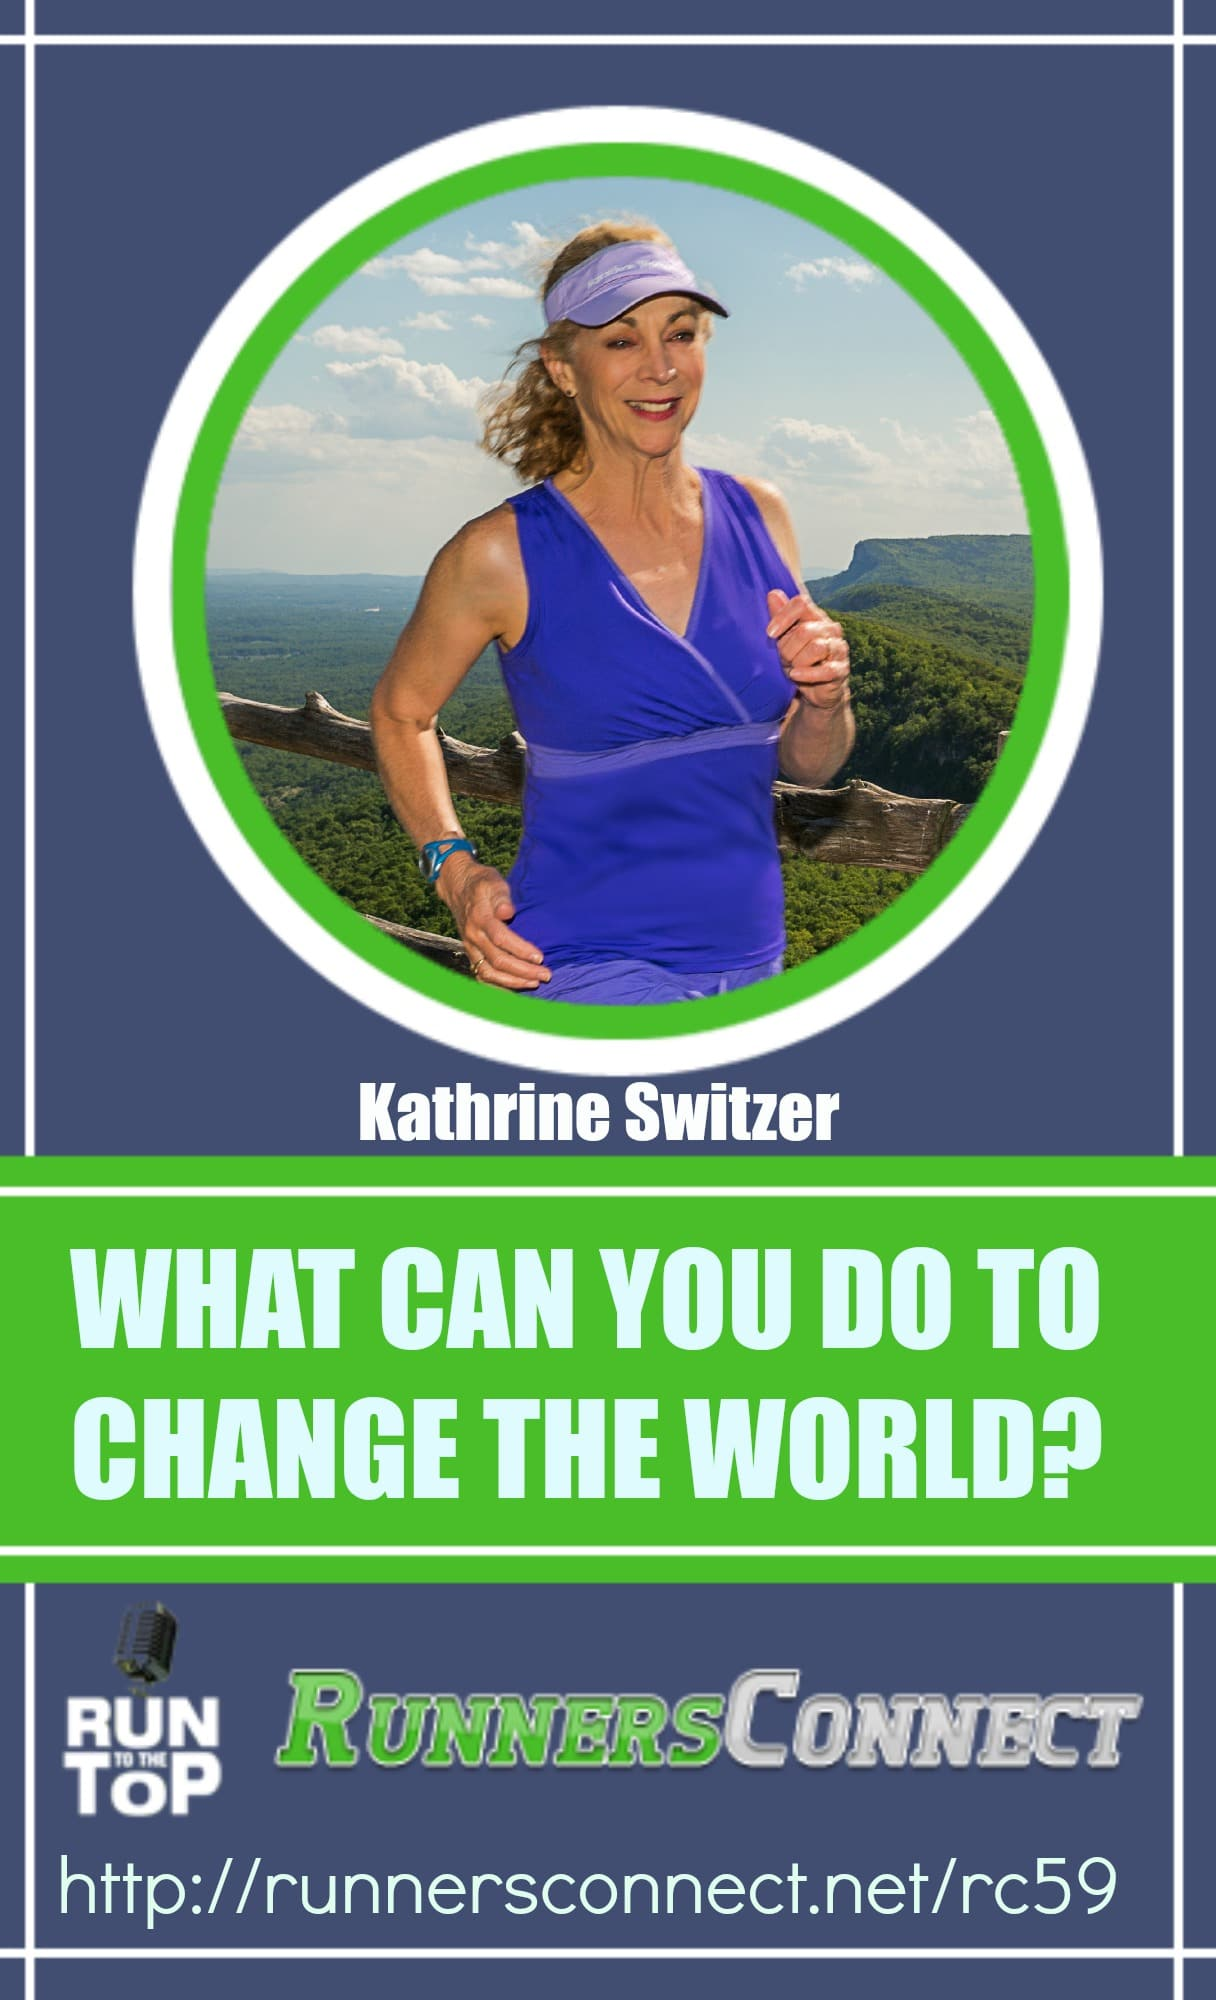 Listen to this inspiring interview with Kathrine Switzer about that historic day at the Boston Marathon, and she talks about the importance of running and runners in creating freedom for people all over the world.